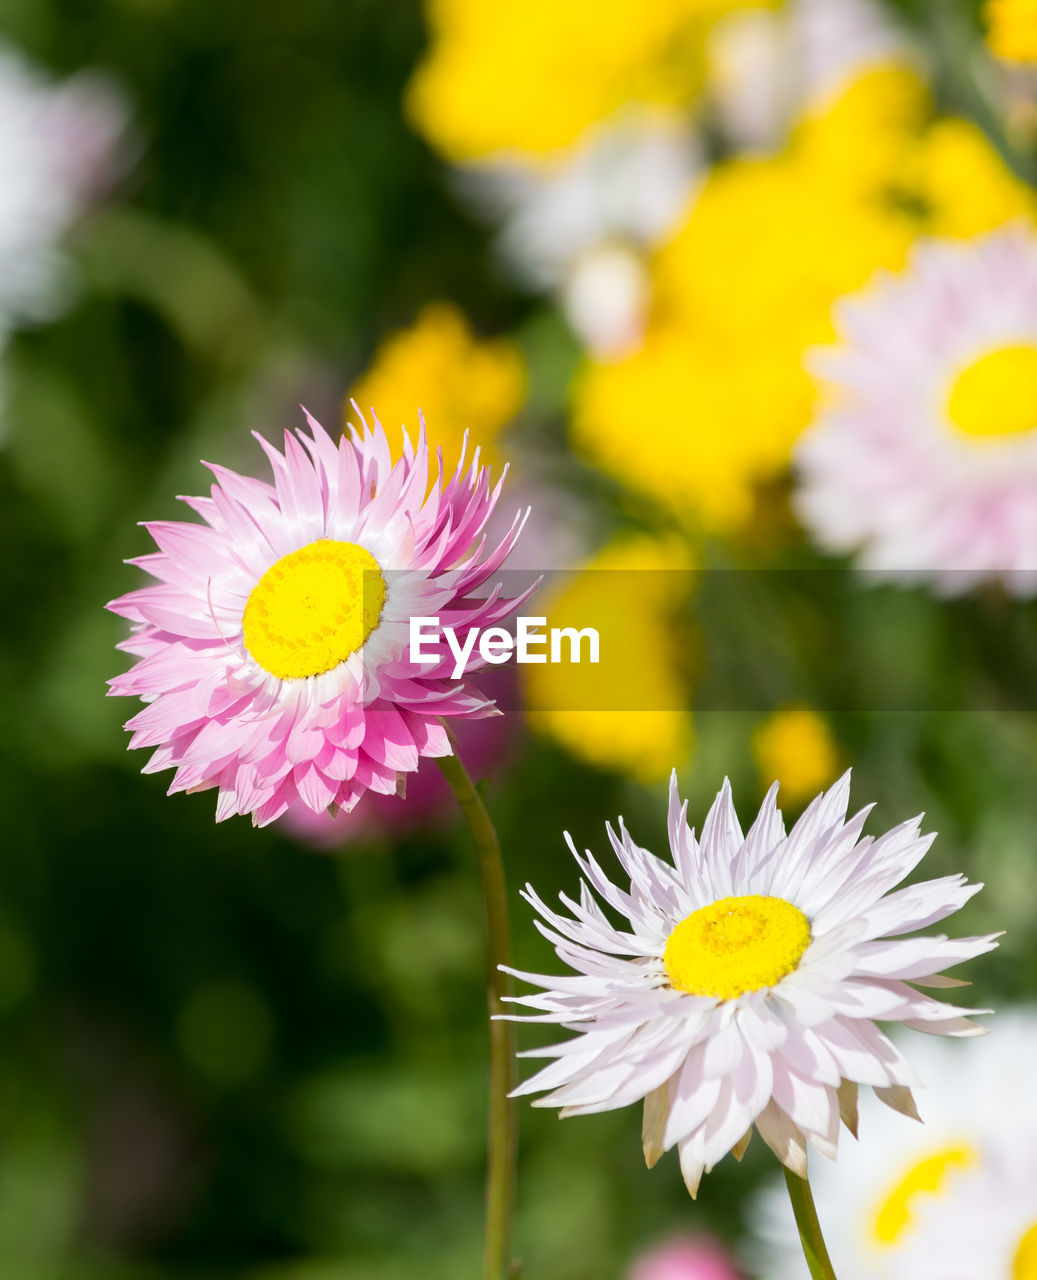 flowering plant, flower, freshness, plant, fragility, petal, vulnerability, beauty in nature, flower head, growth, inflorescence, yellow, close-up, focus on foreground, nature, white color, day, pink color, daisy, pollen, no people, outdoors, gazania